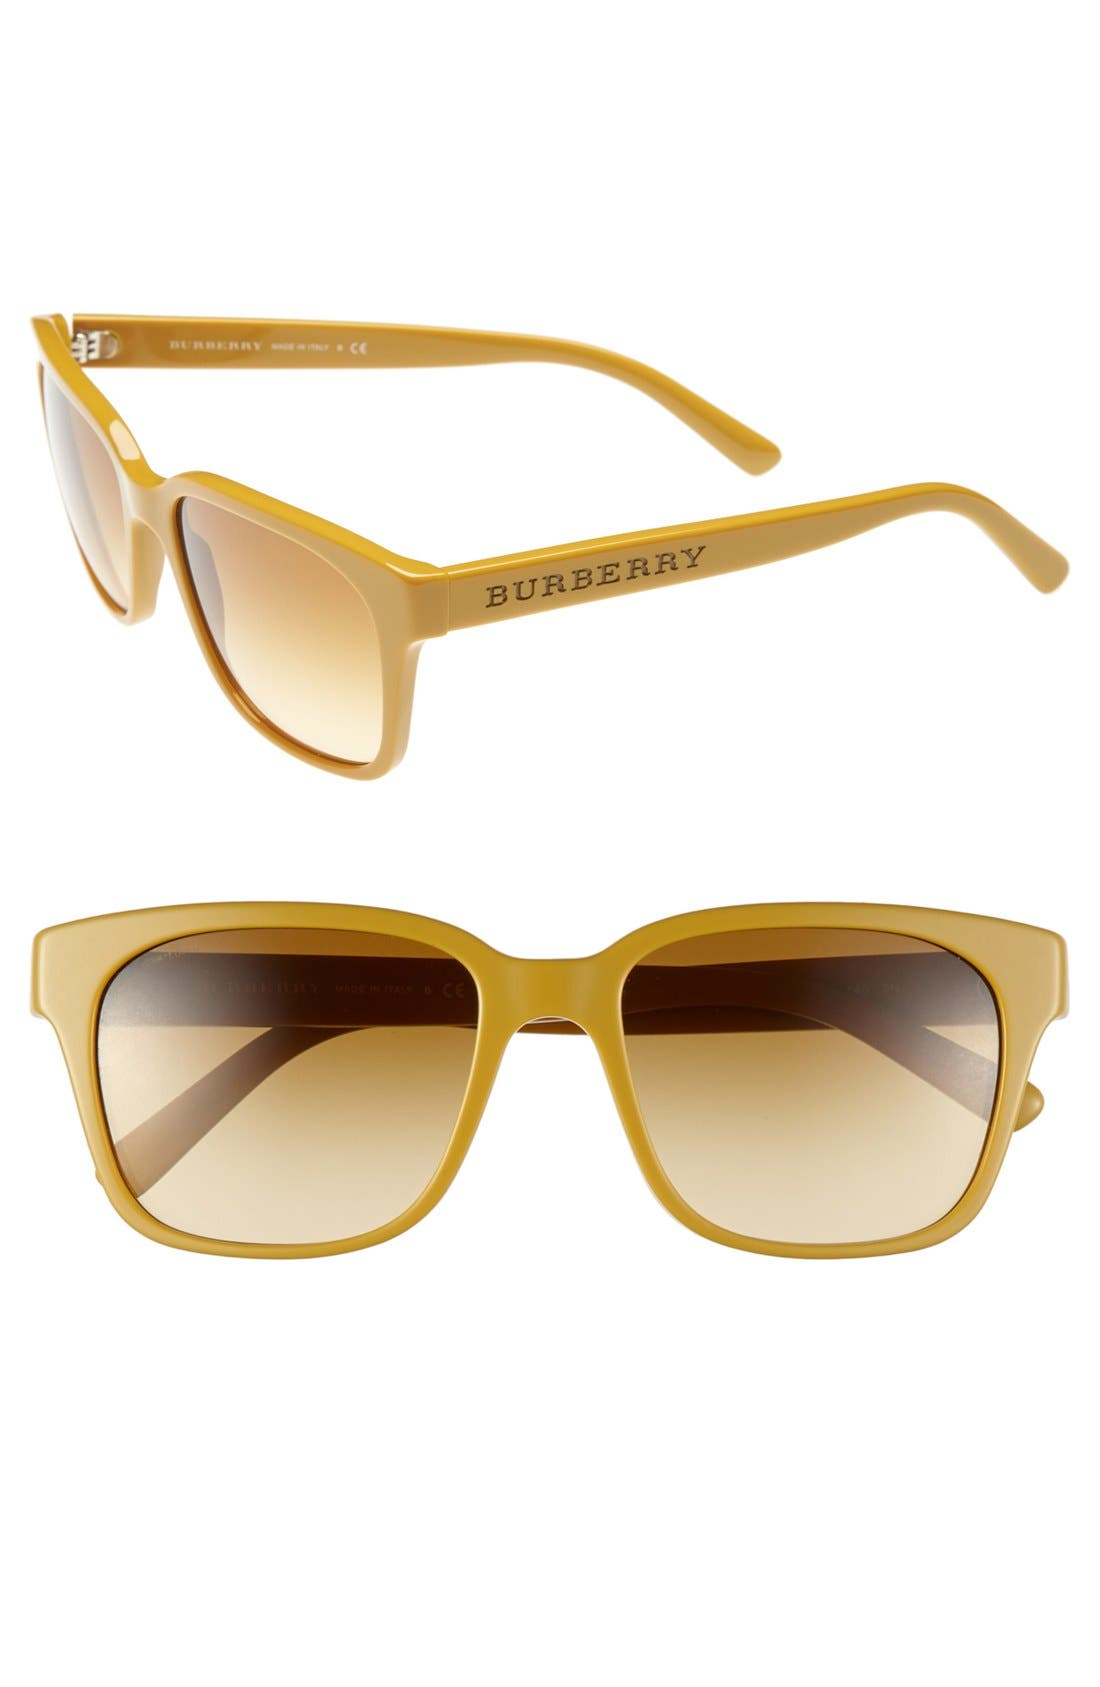 Alternate Image 1 Selected - Burberry 'Splash' 55mm Sunglasses